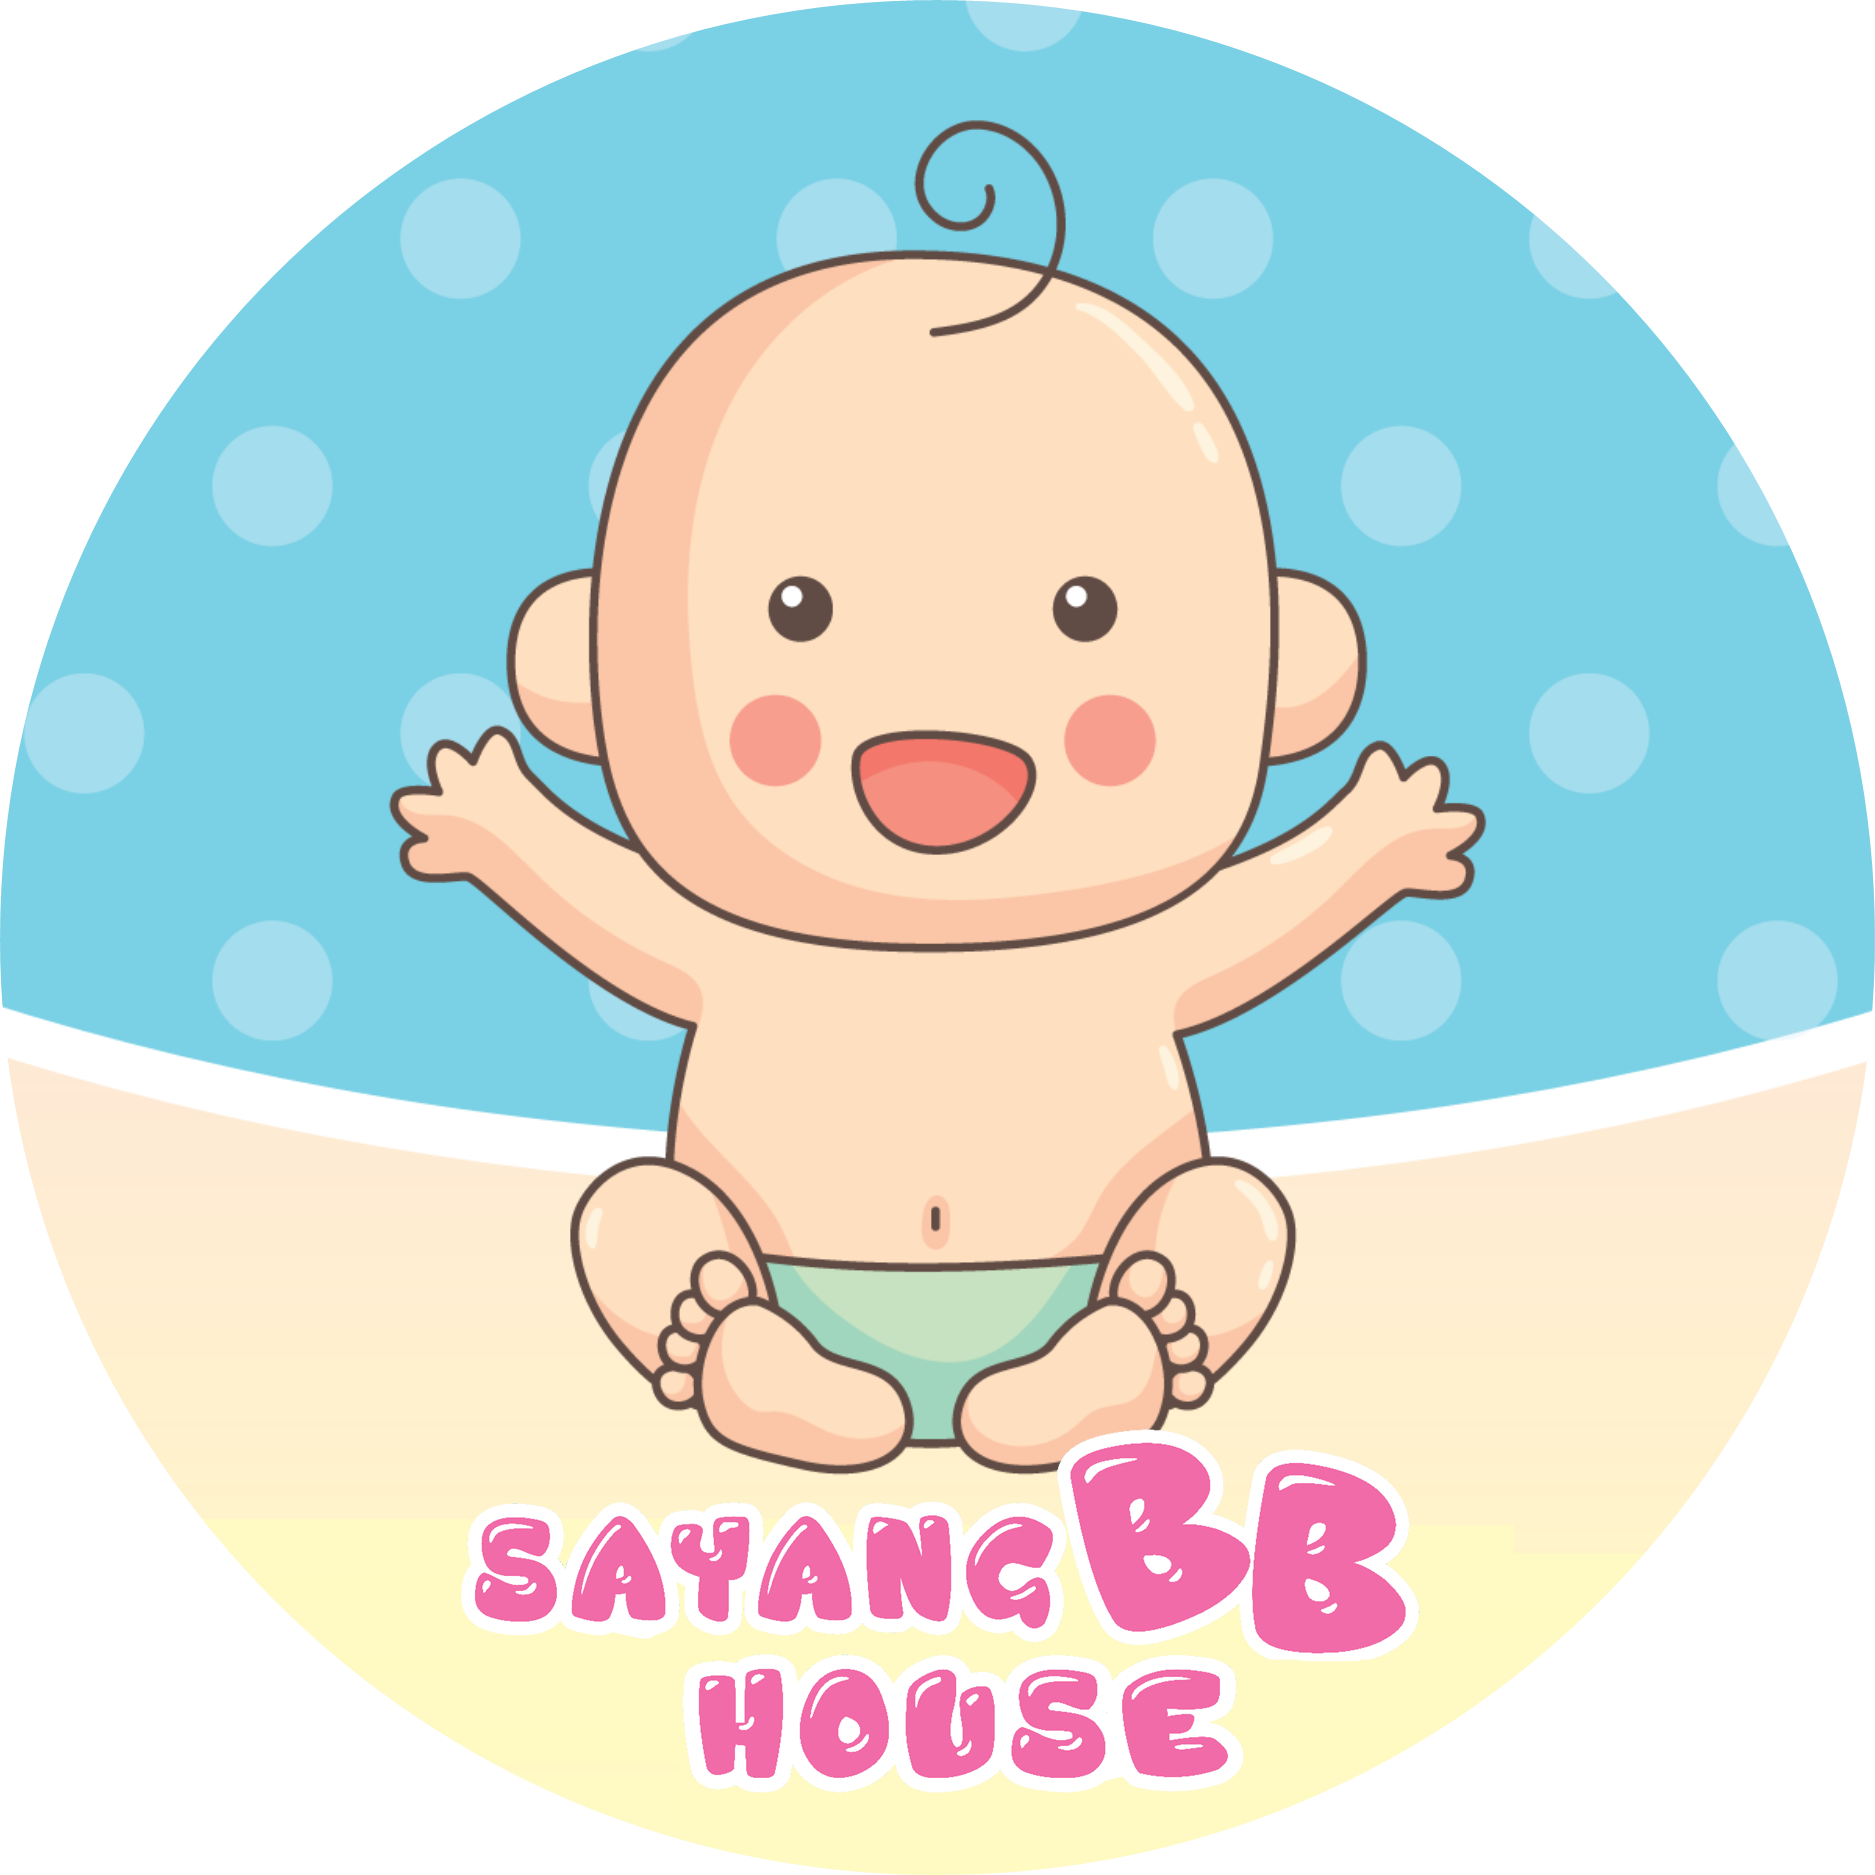 SAYANG BB HOUSE